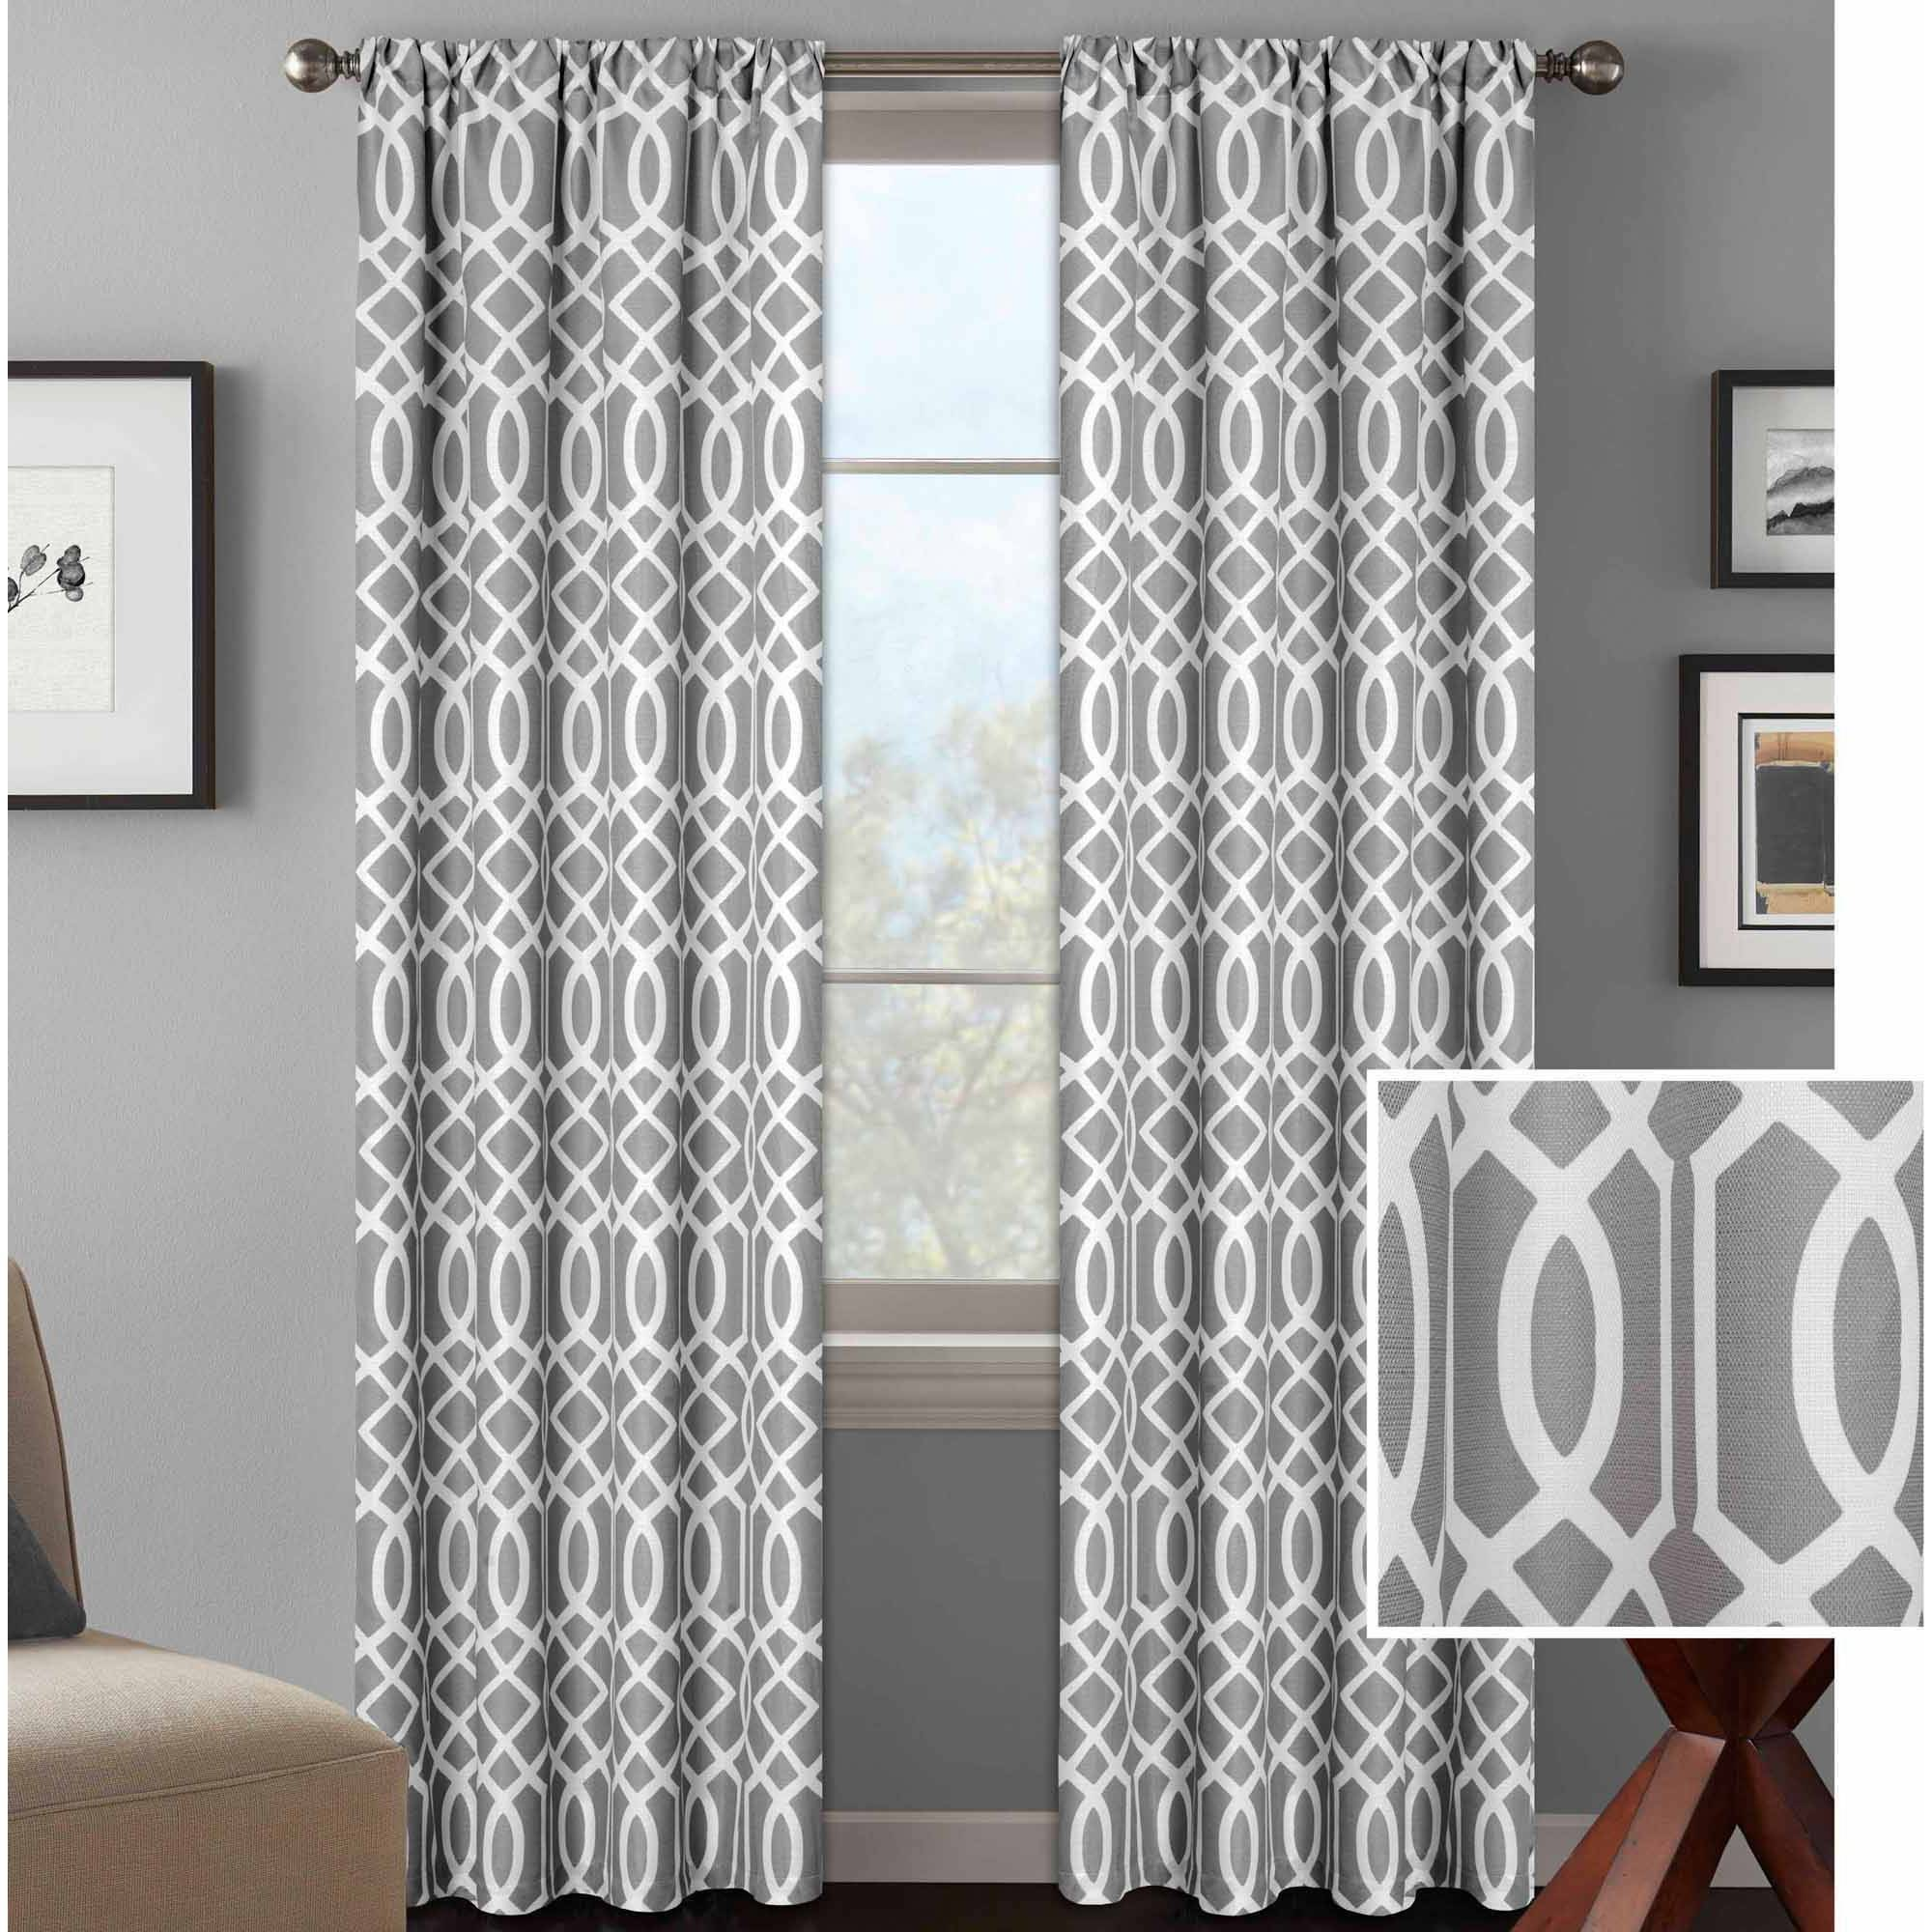 Mainstays Chevron Polyester/Cotton Curtain With BONUS Panel Available In  Multiple Colors And Sizes   Walmart.com Part 79